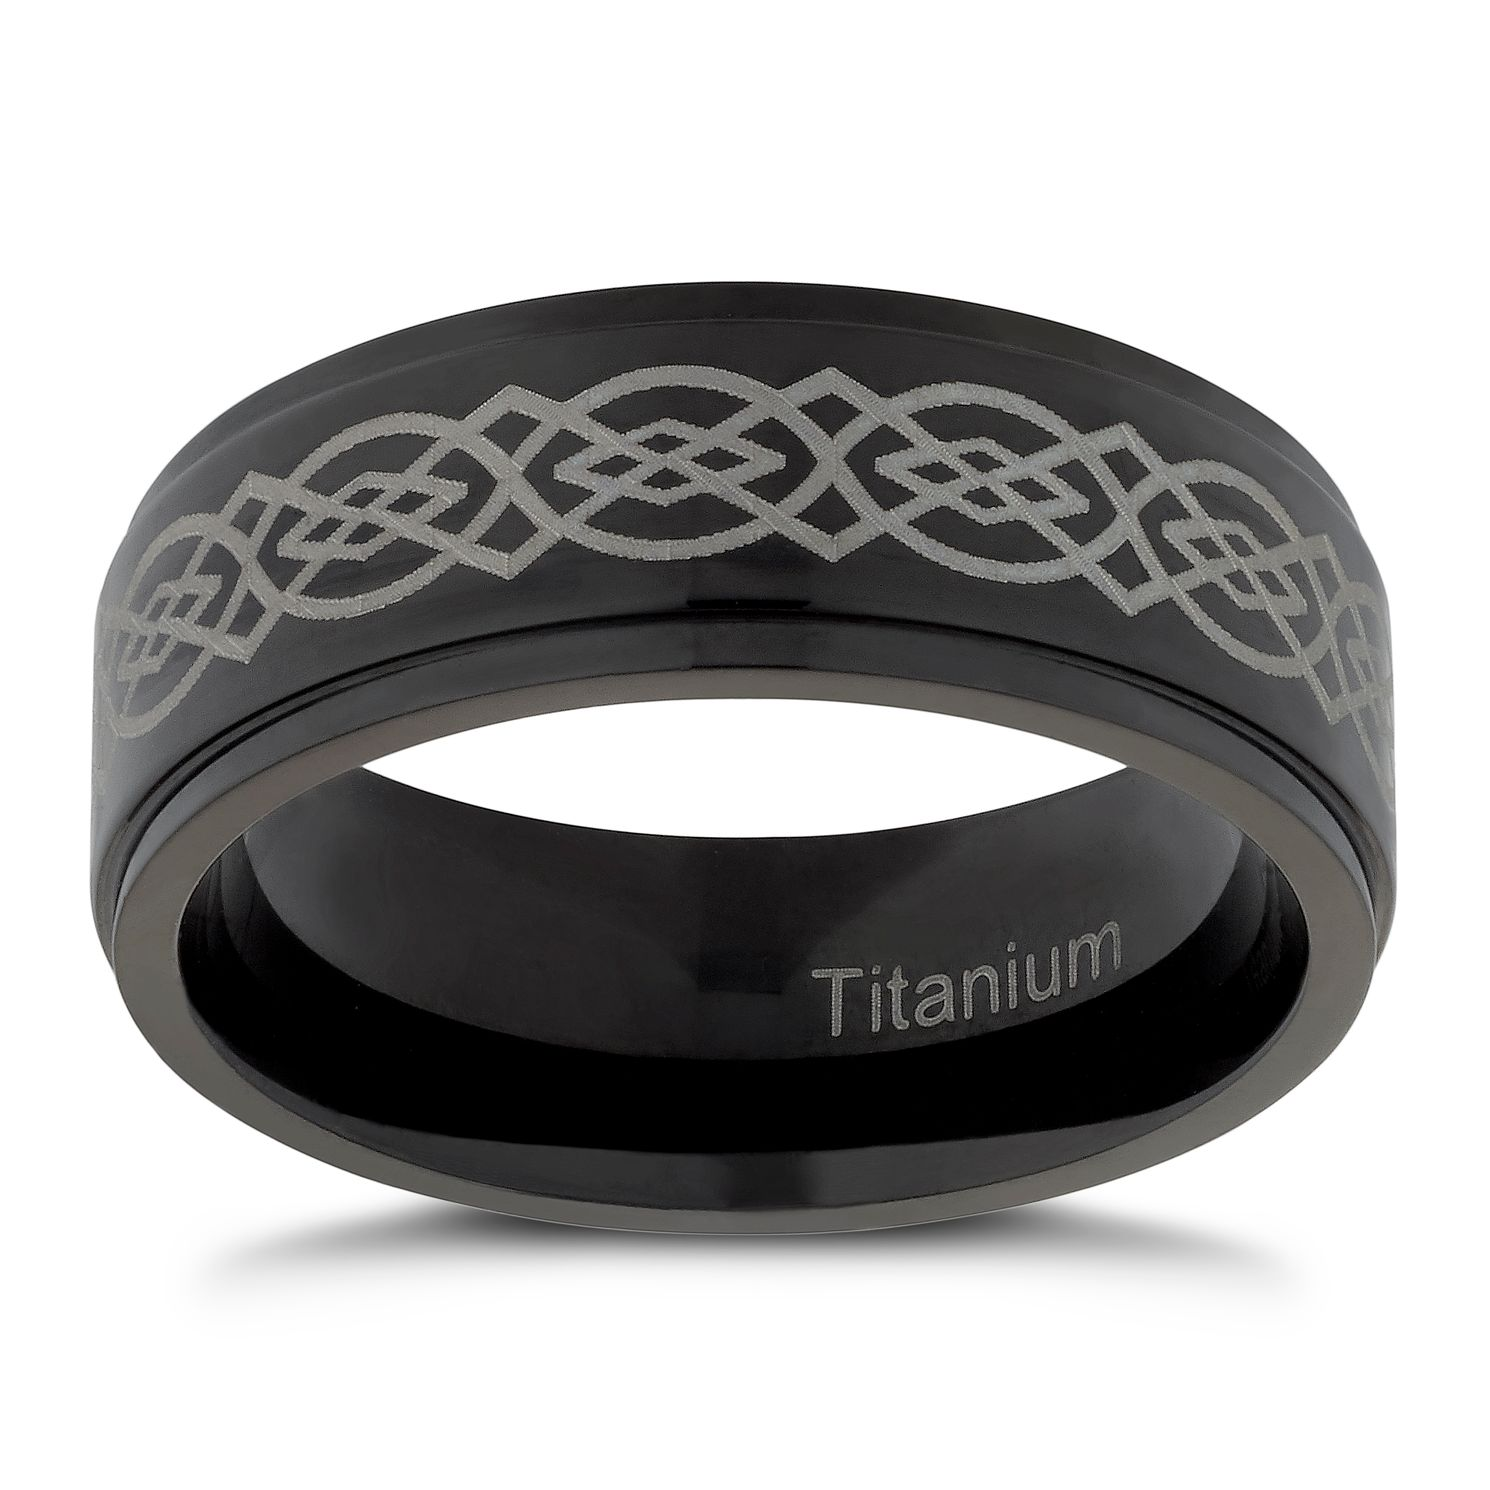 Men's Titanium Black Patterned Ring - Product number 4716590